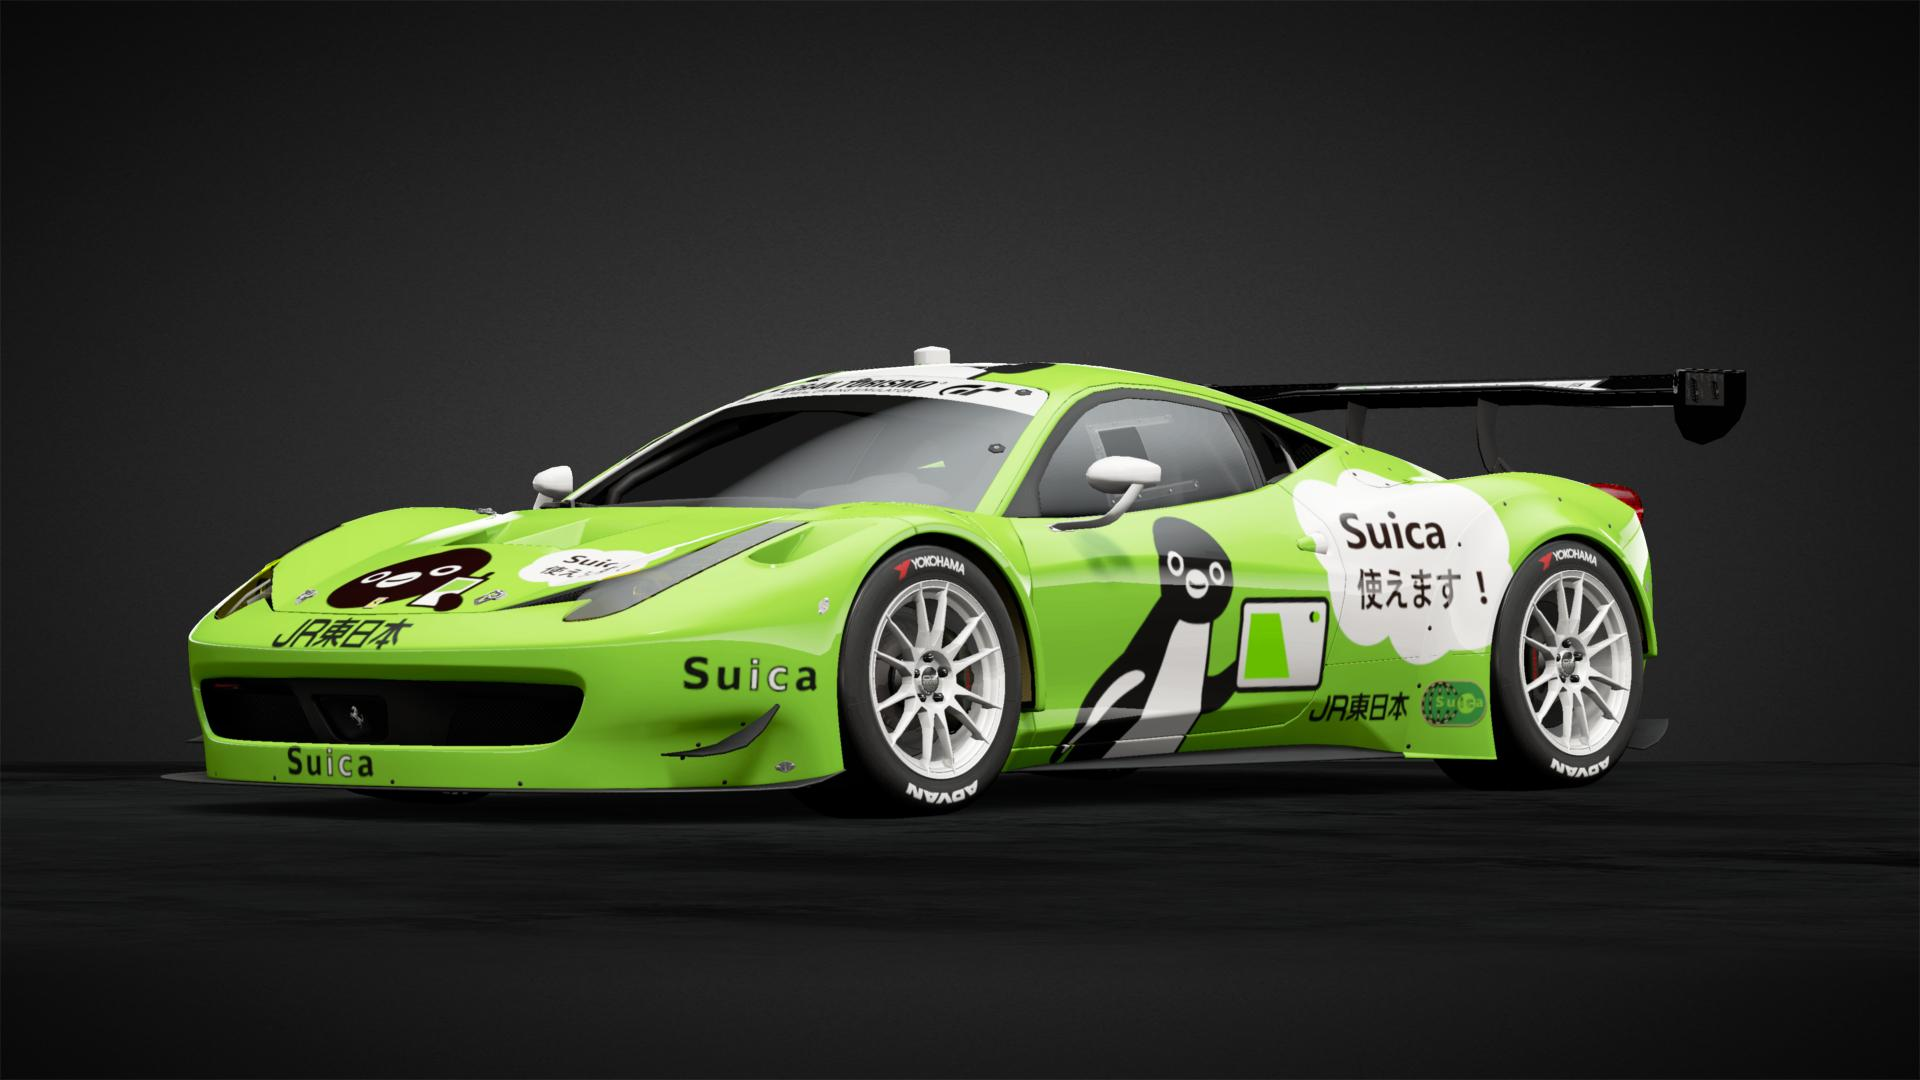 Suicaペンギン Car Livery By Mussan321 Community Gran Turismo